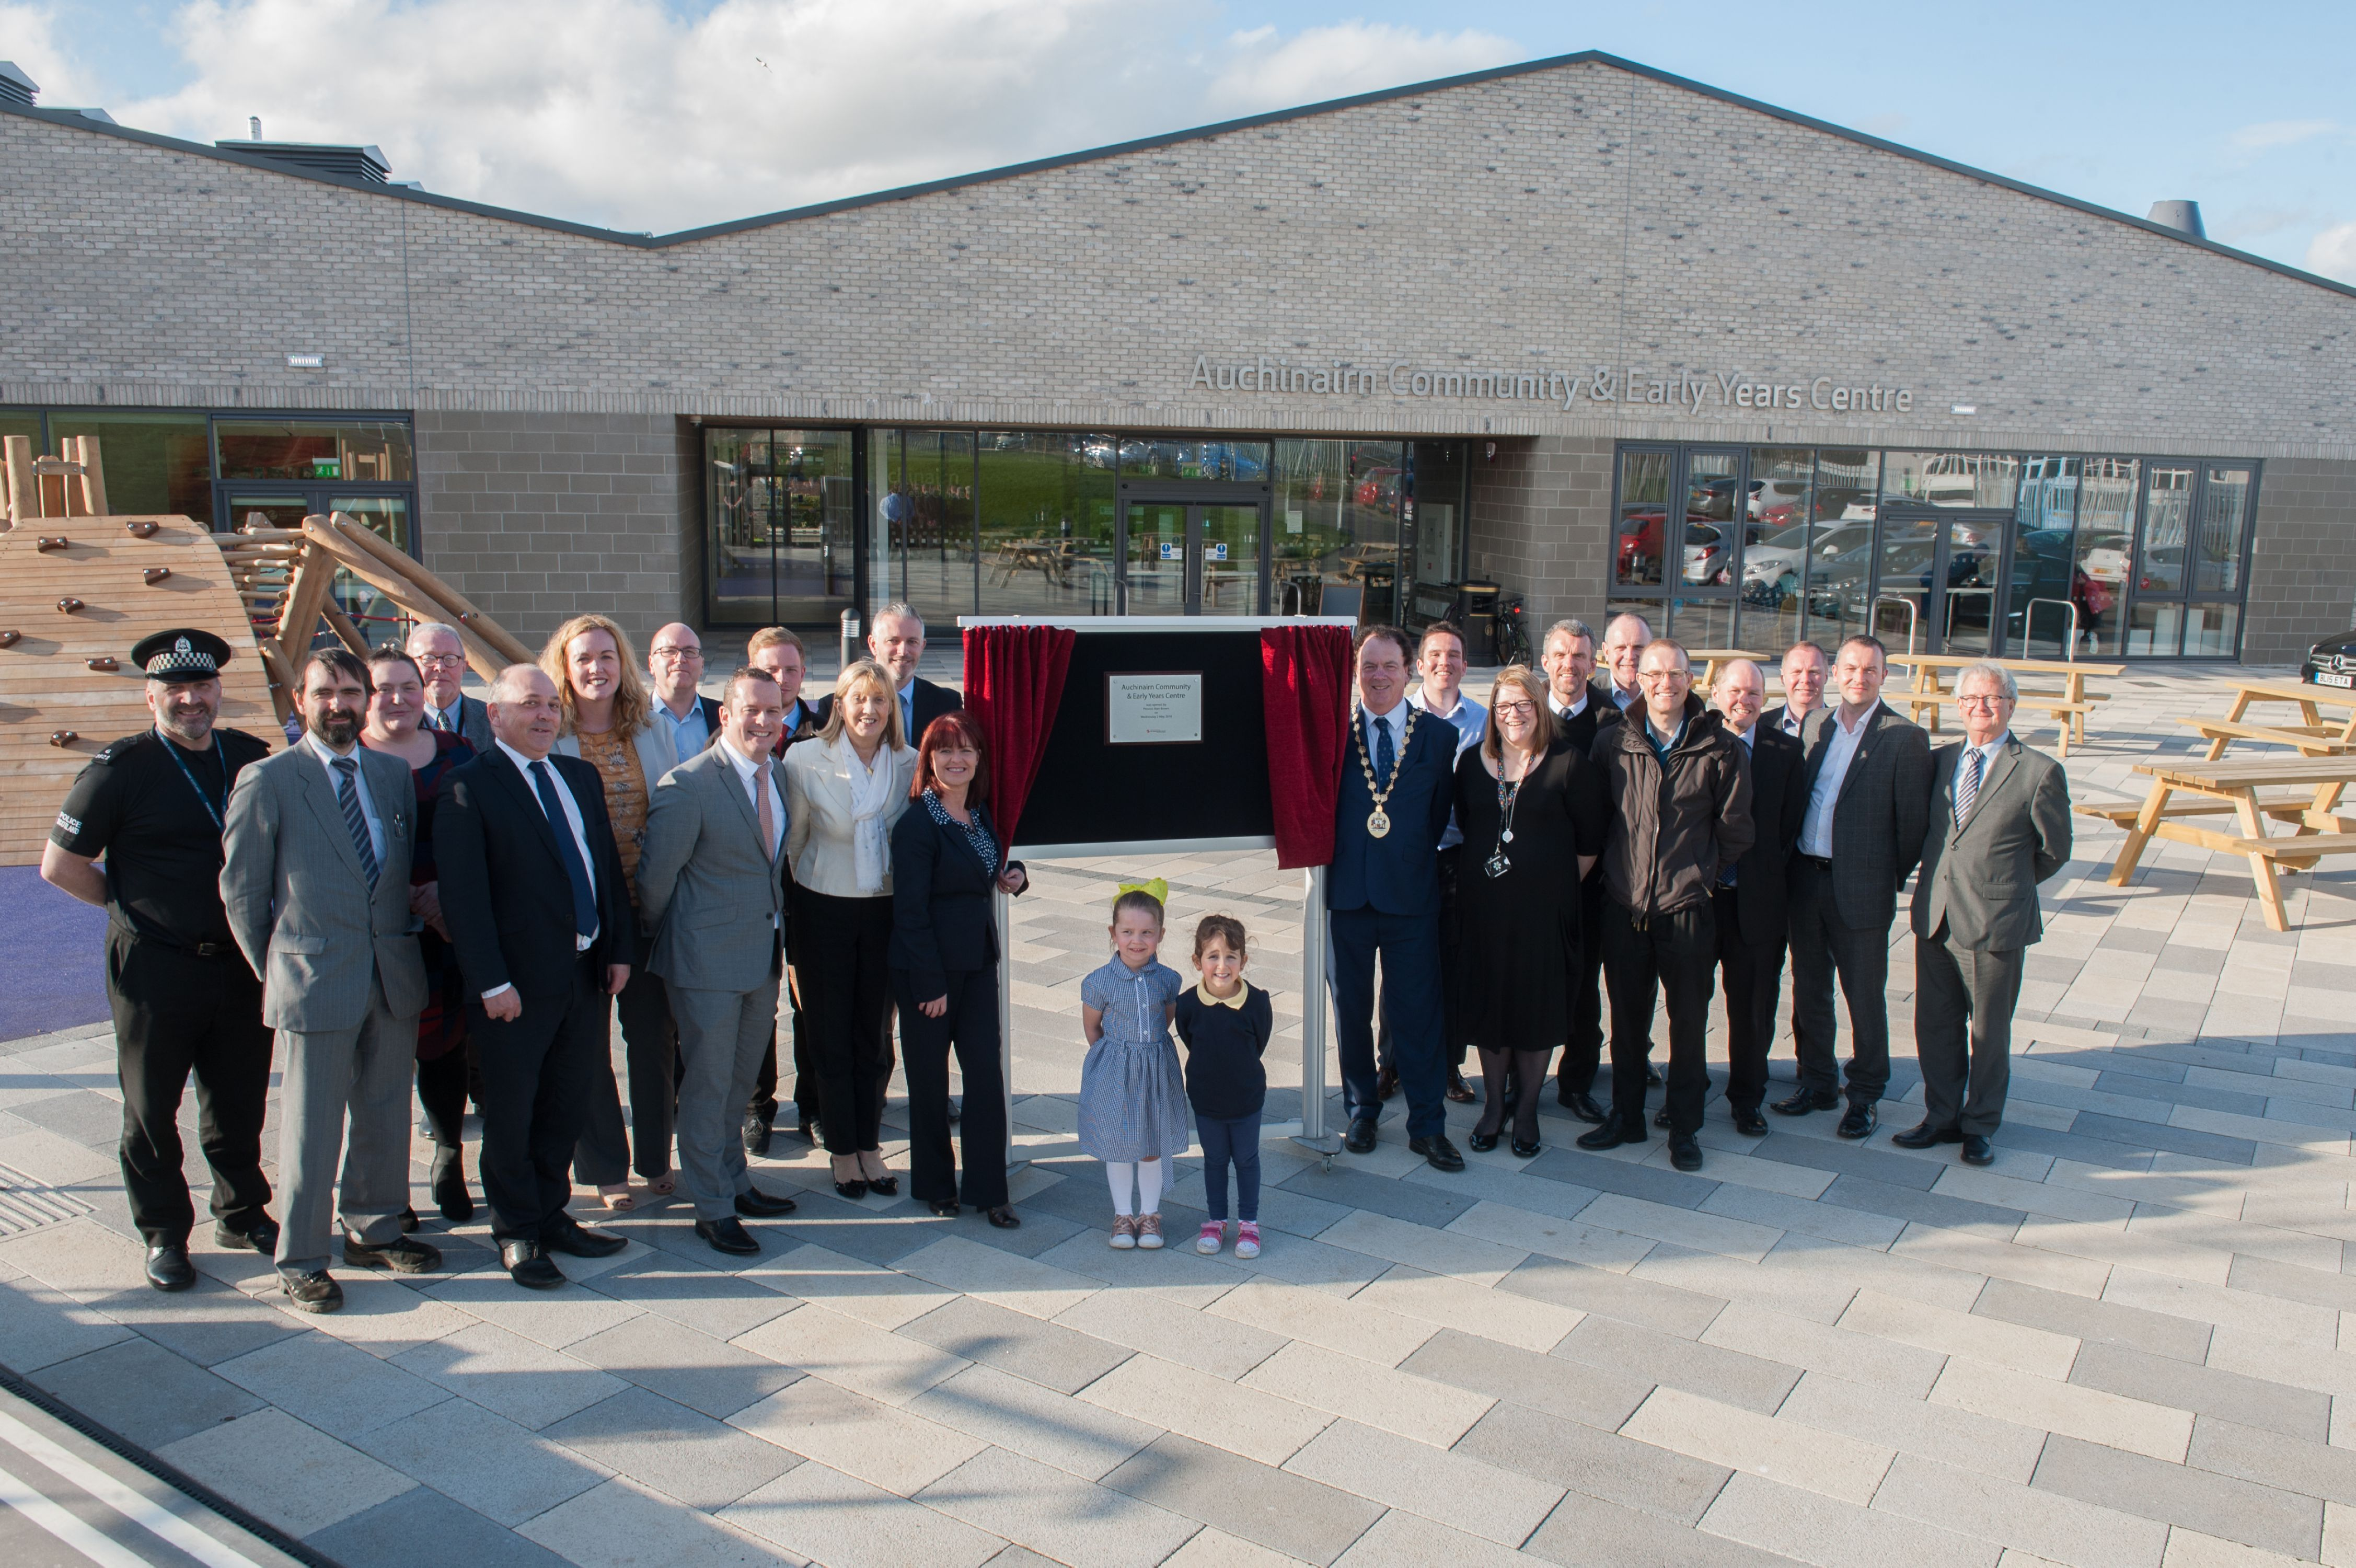 Construction completes on £4.95m Auchinairn community facility